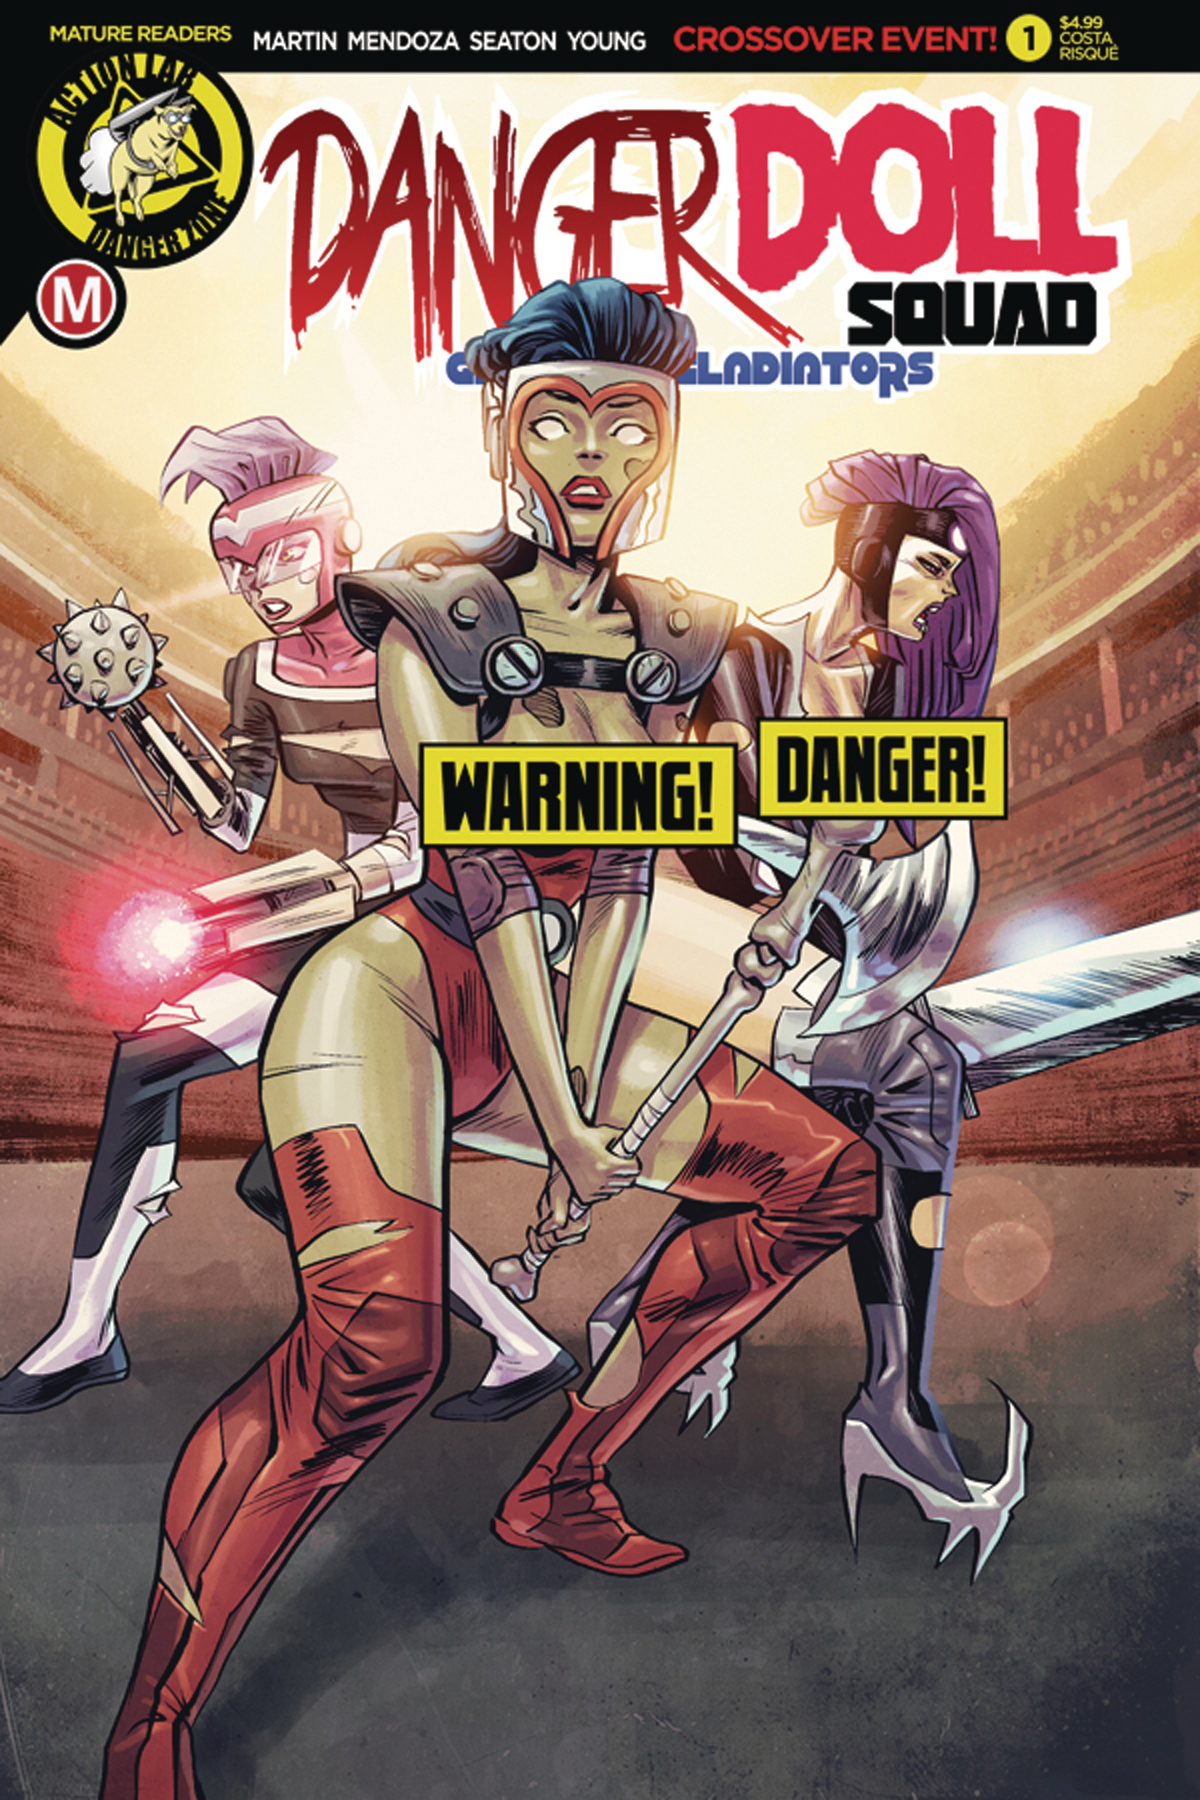 DANGER DOLL SQUAD GALACTIC GLADIATORS #1 CVR D COSTA RISQUE